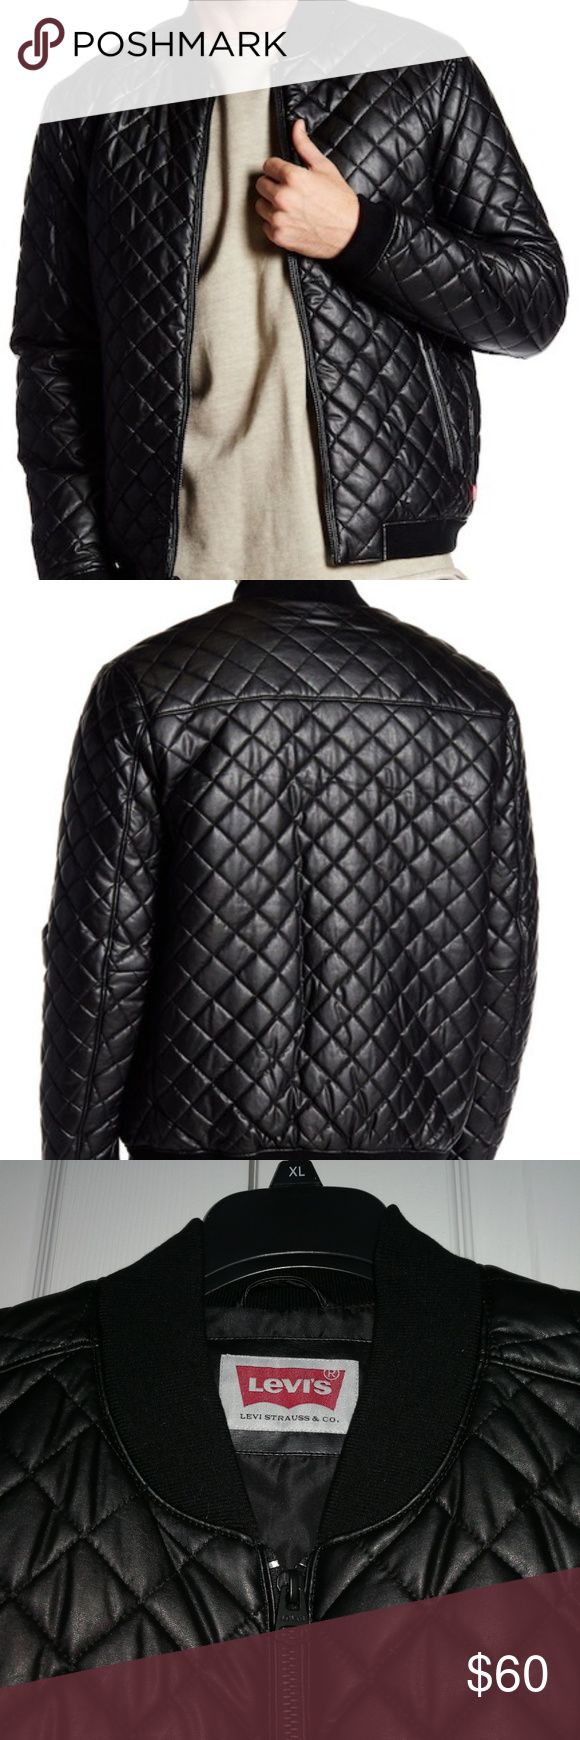 """Levi's Faux Leather Diamond Quilted Bomber Jacket Brand new with tag. By Levi's Details - Banded neck - Long sleeves - Front zip closure - 2 side zip closure pockets - Ribbed trim - Quilted faux leather construction - Lined and filled - Approx. 26"""" length Levi's Jackets & Coats Bomber & Varsity"""